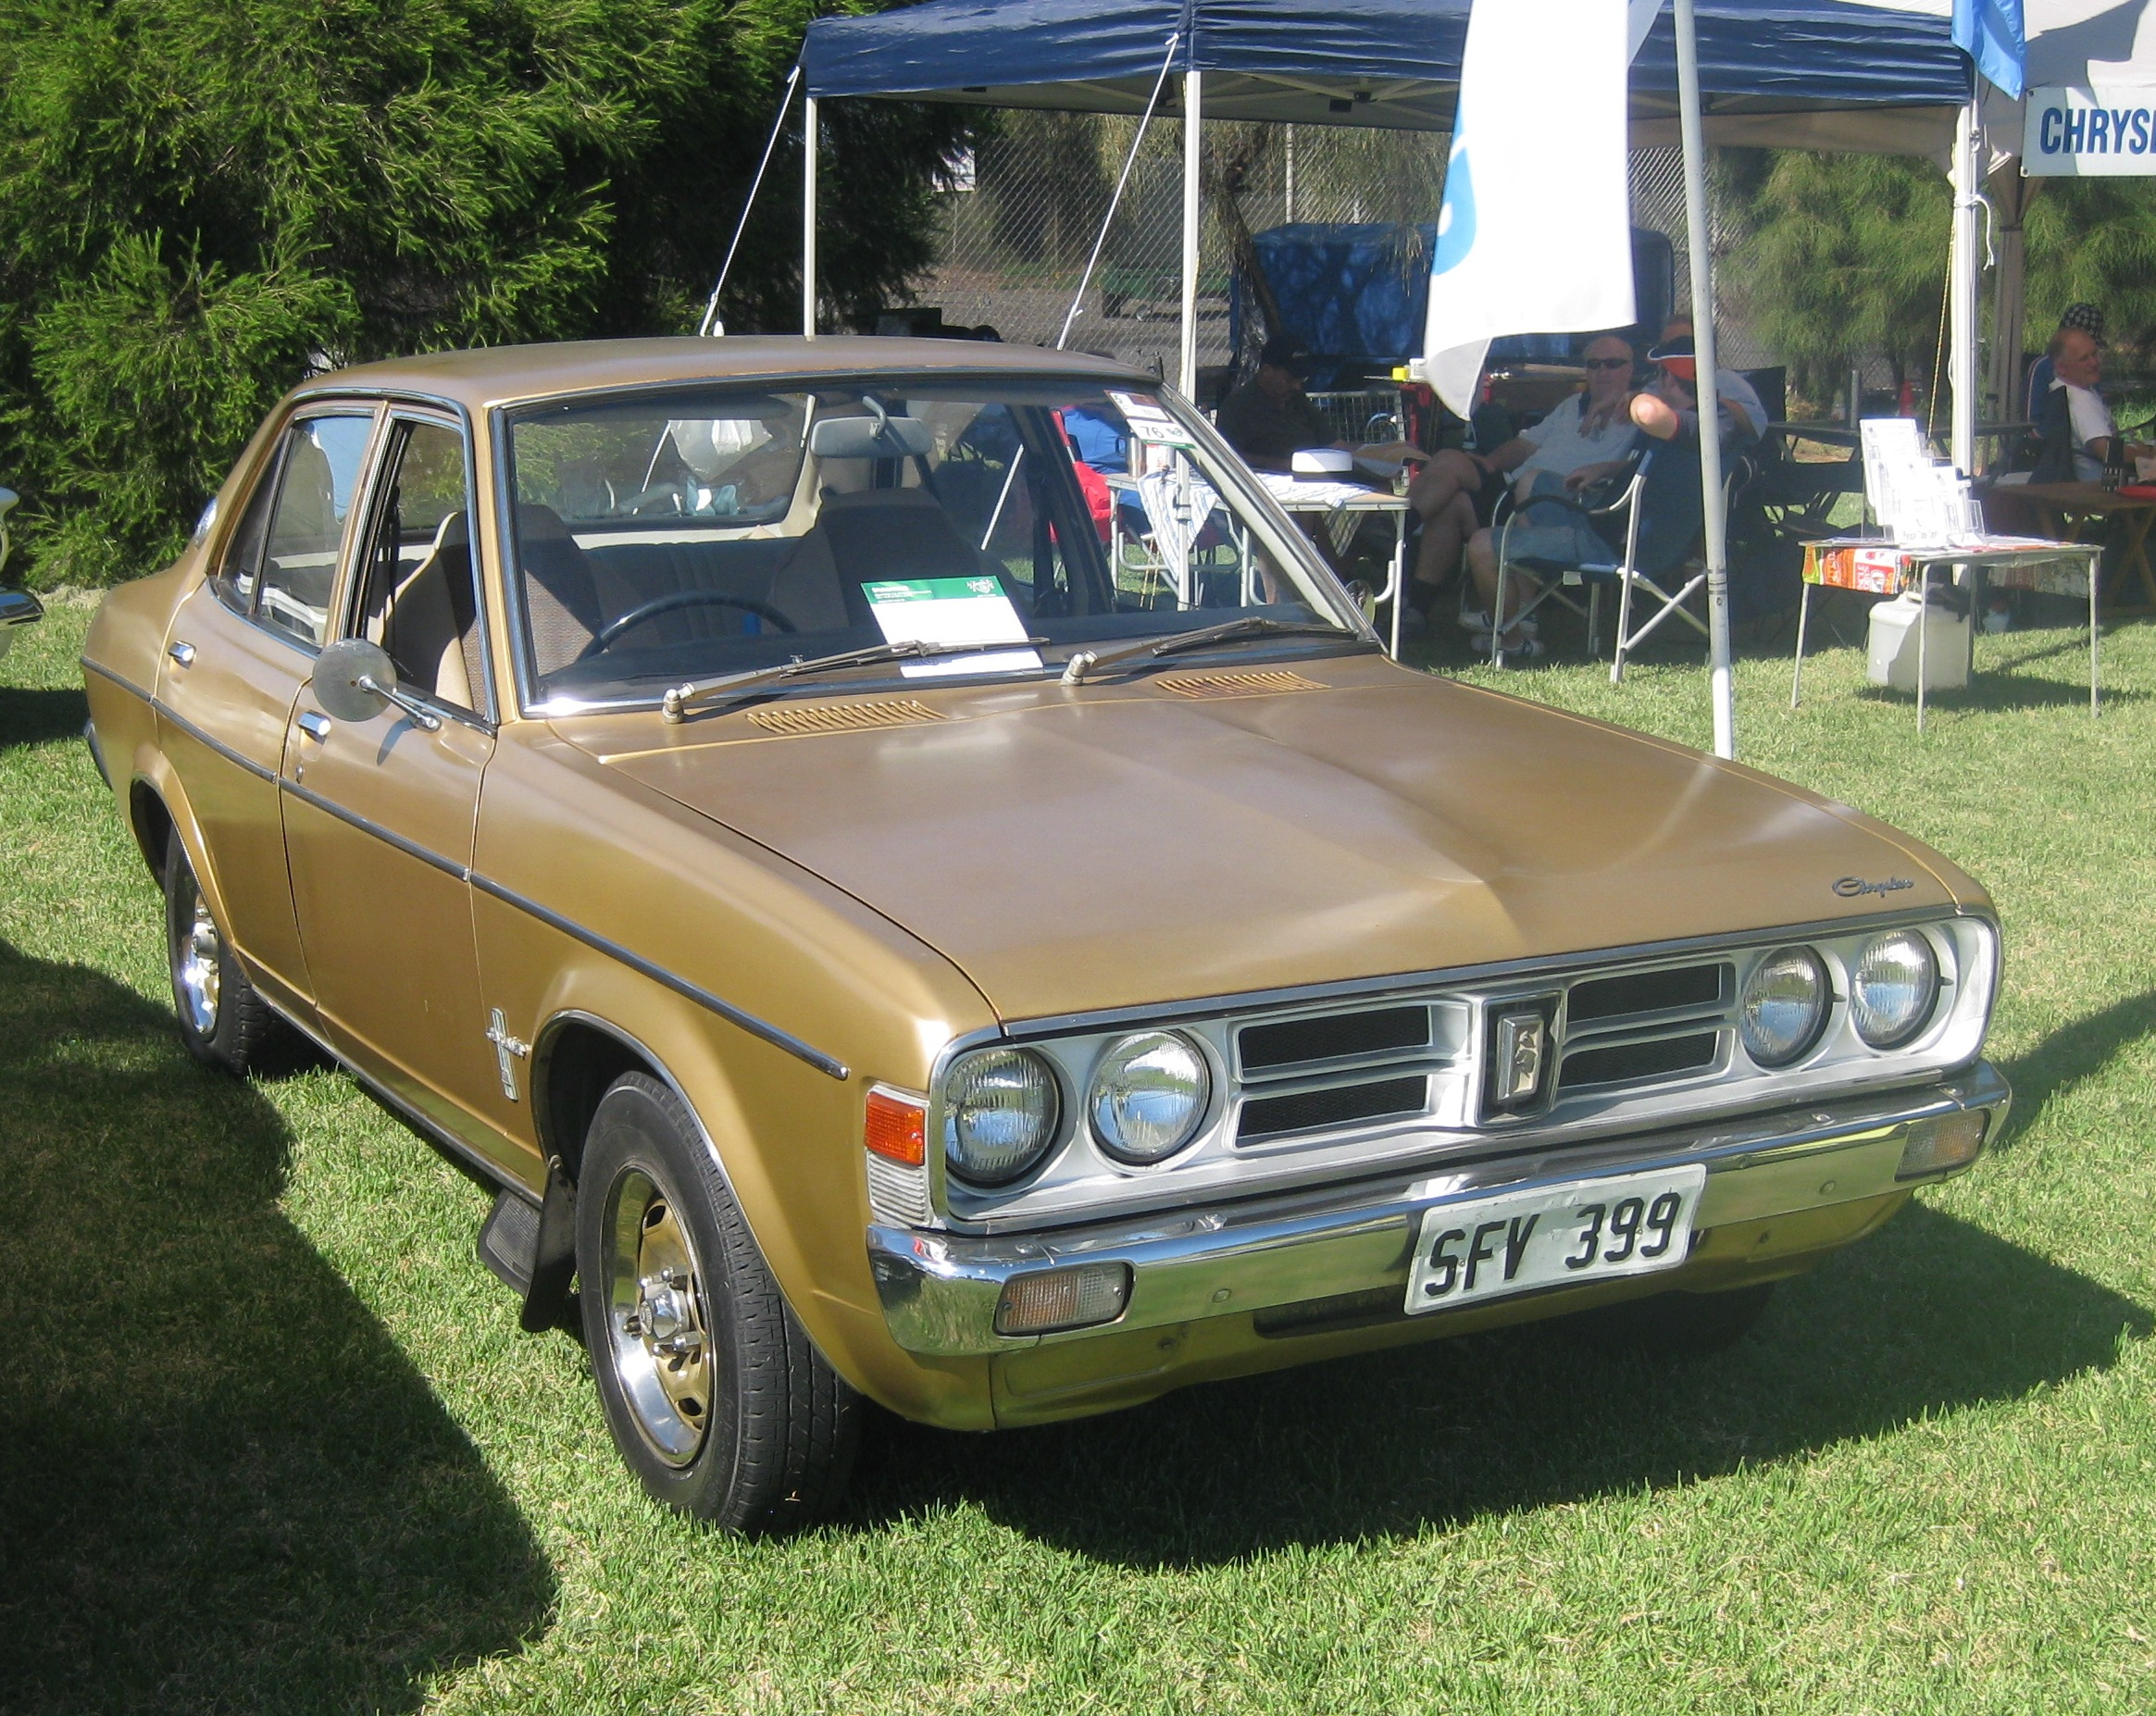 1976 Chrysler Valiant #10